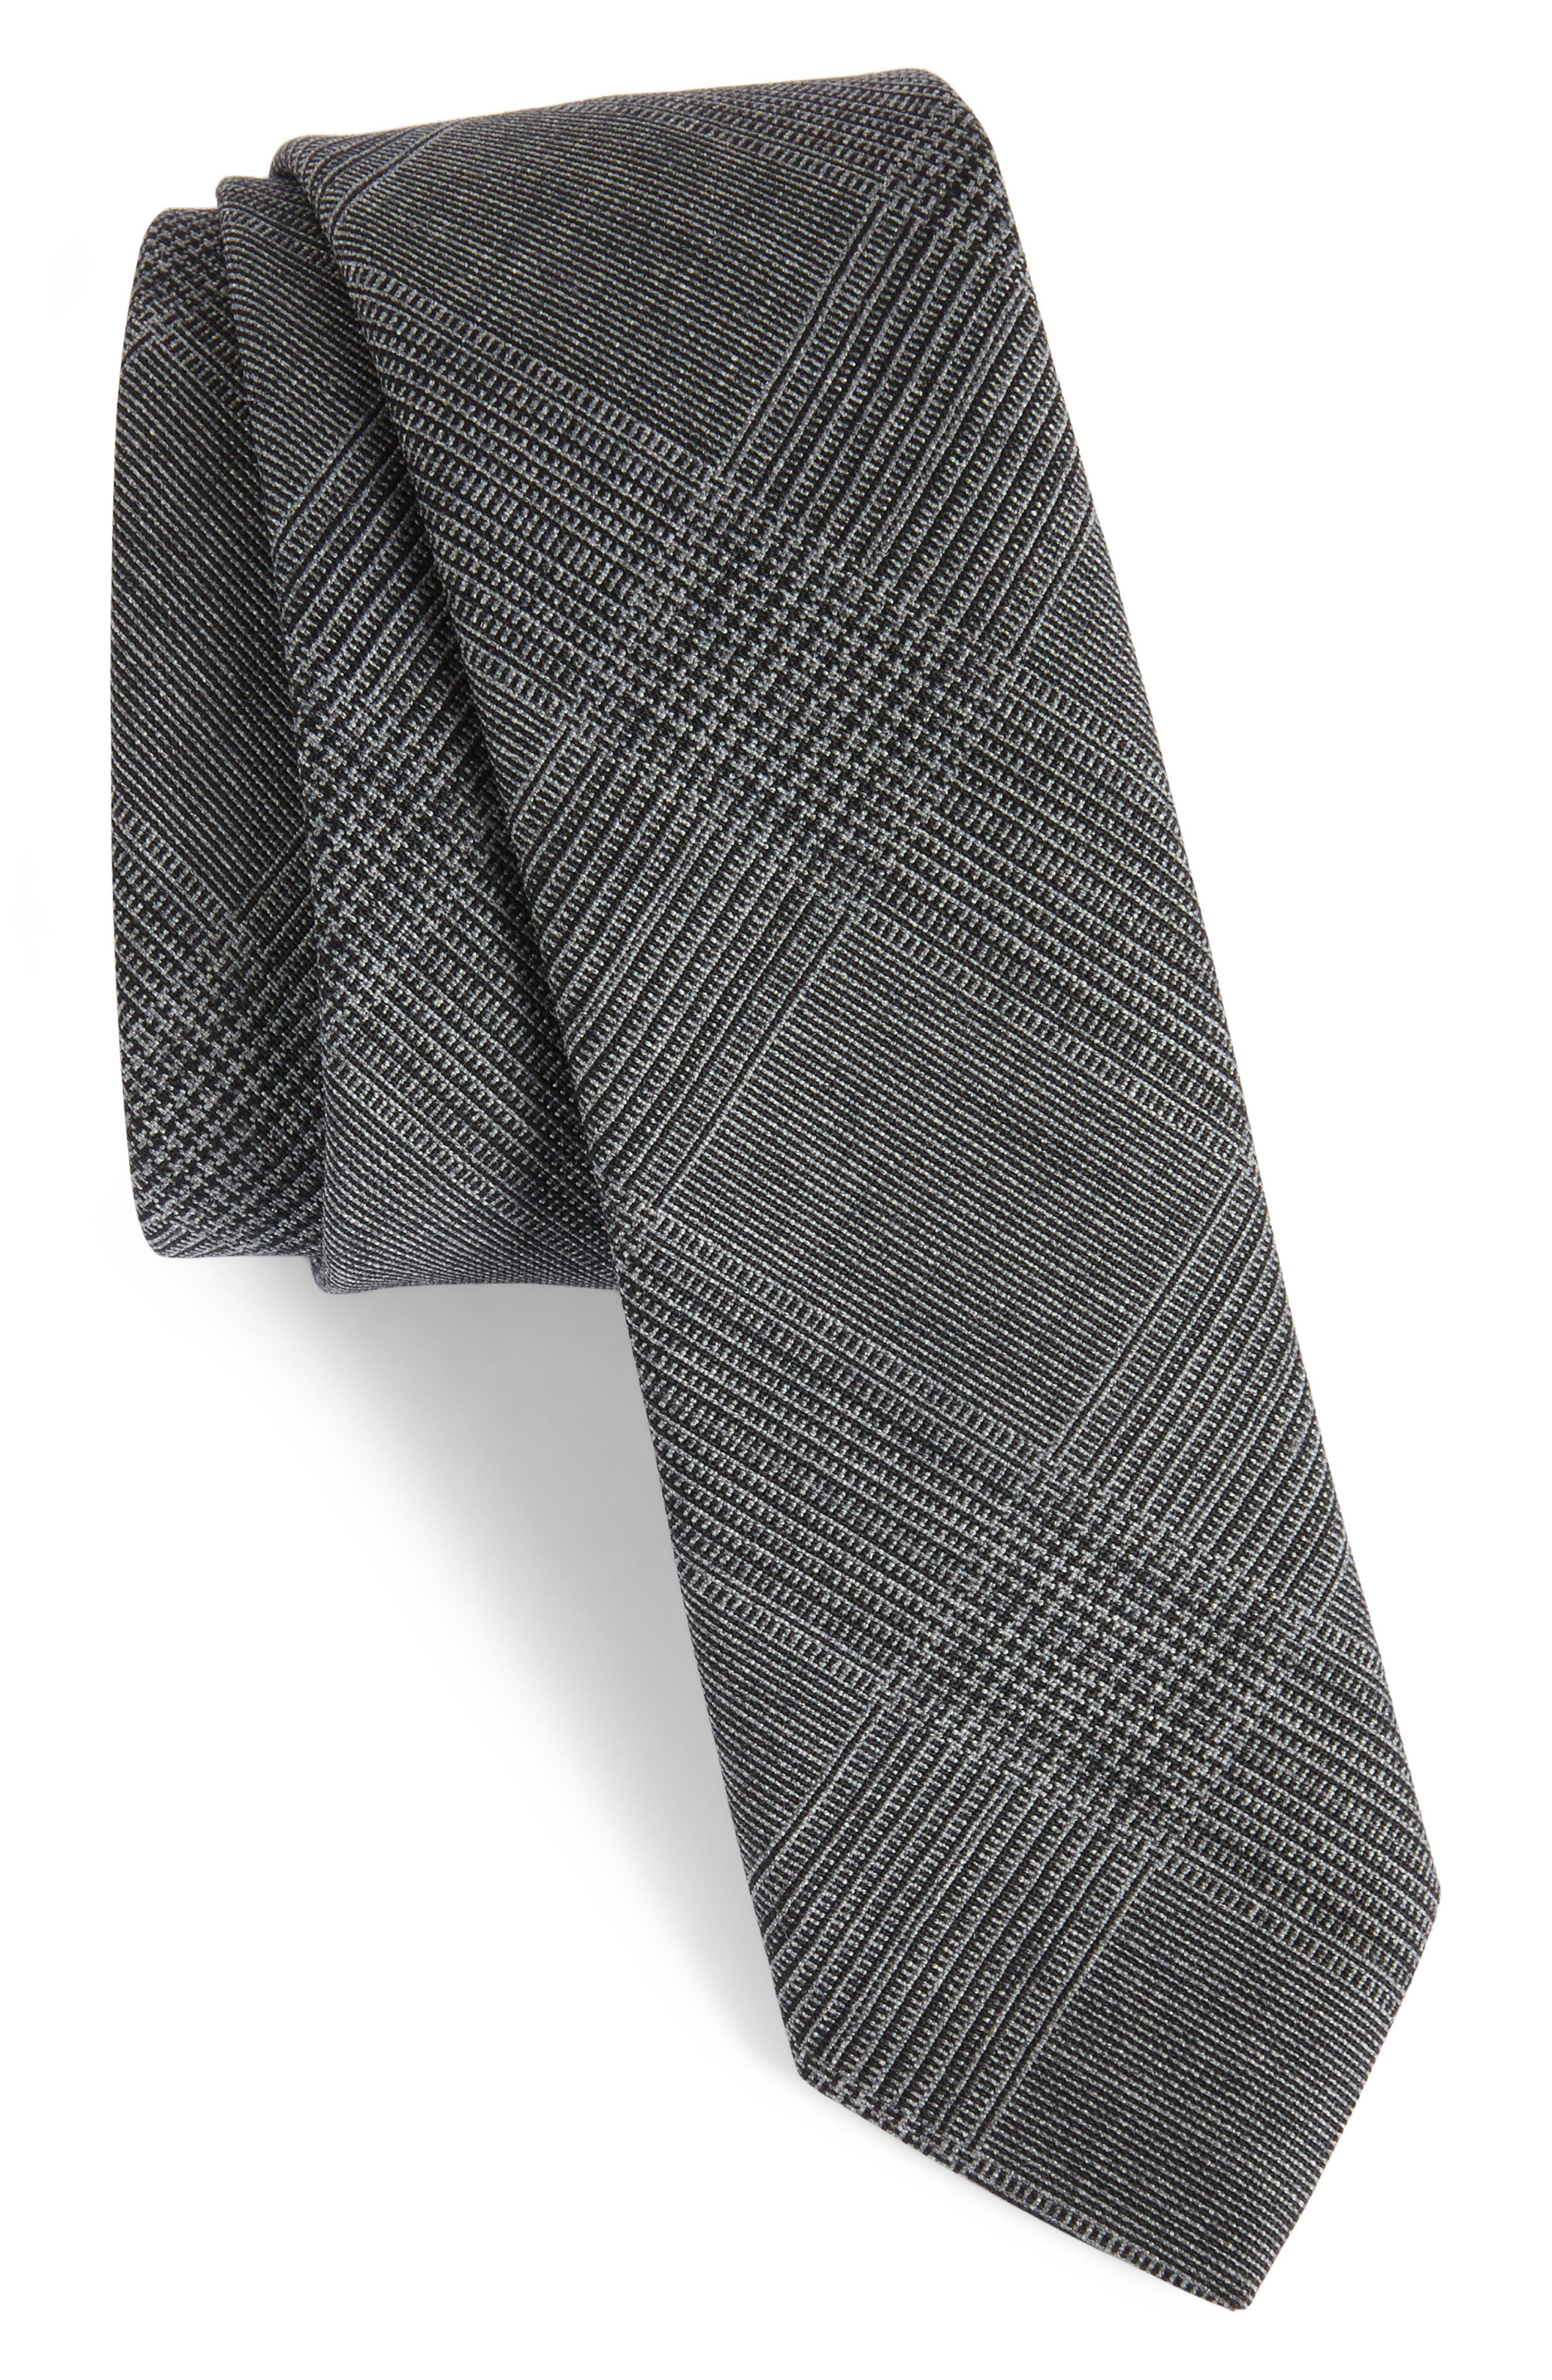 Glen Plaid Wool Skinny Tie,                             Main thumbnail 1, color,                             CHARCOAL